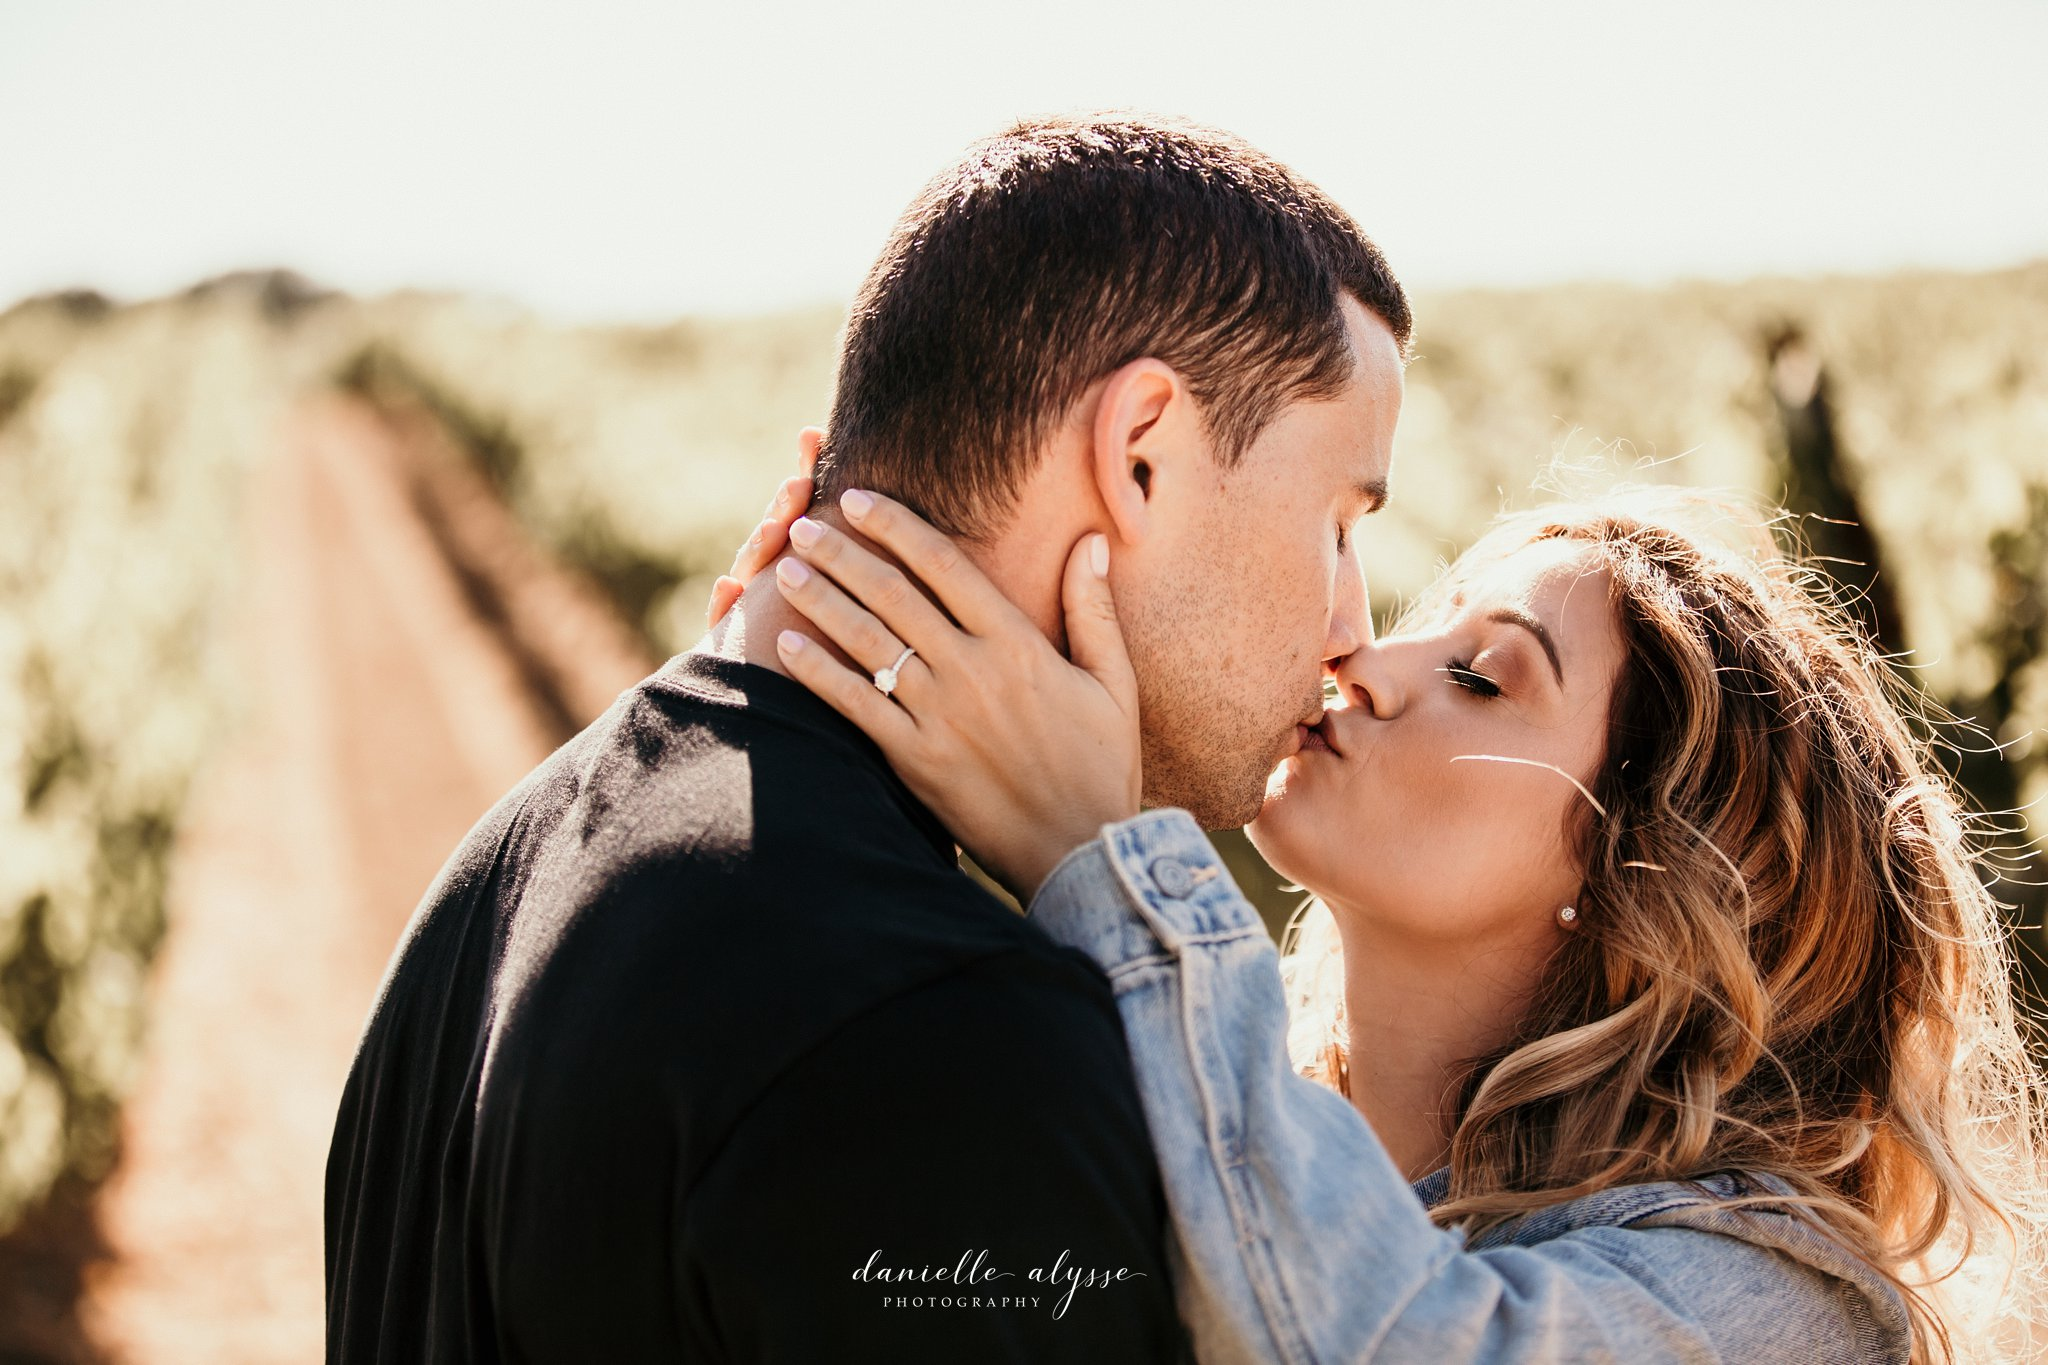 180804_engagement_katie_matt_dillon_beach_napa_danielle_alysse_photography_blog_27_WEB.jpg